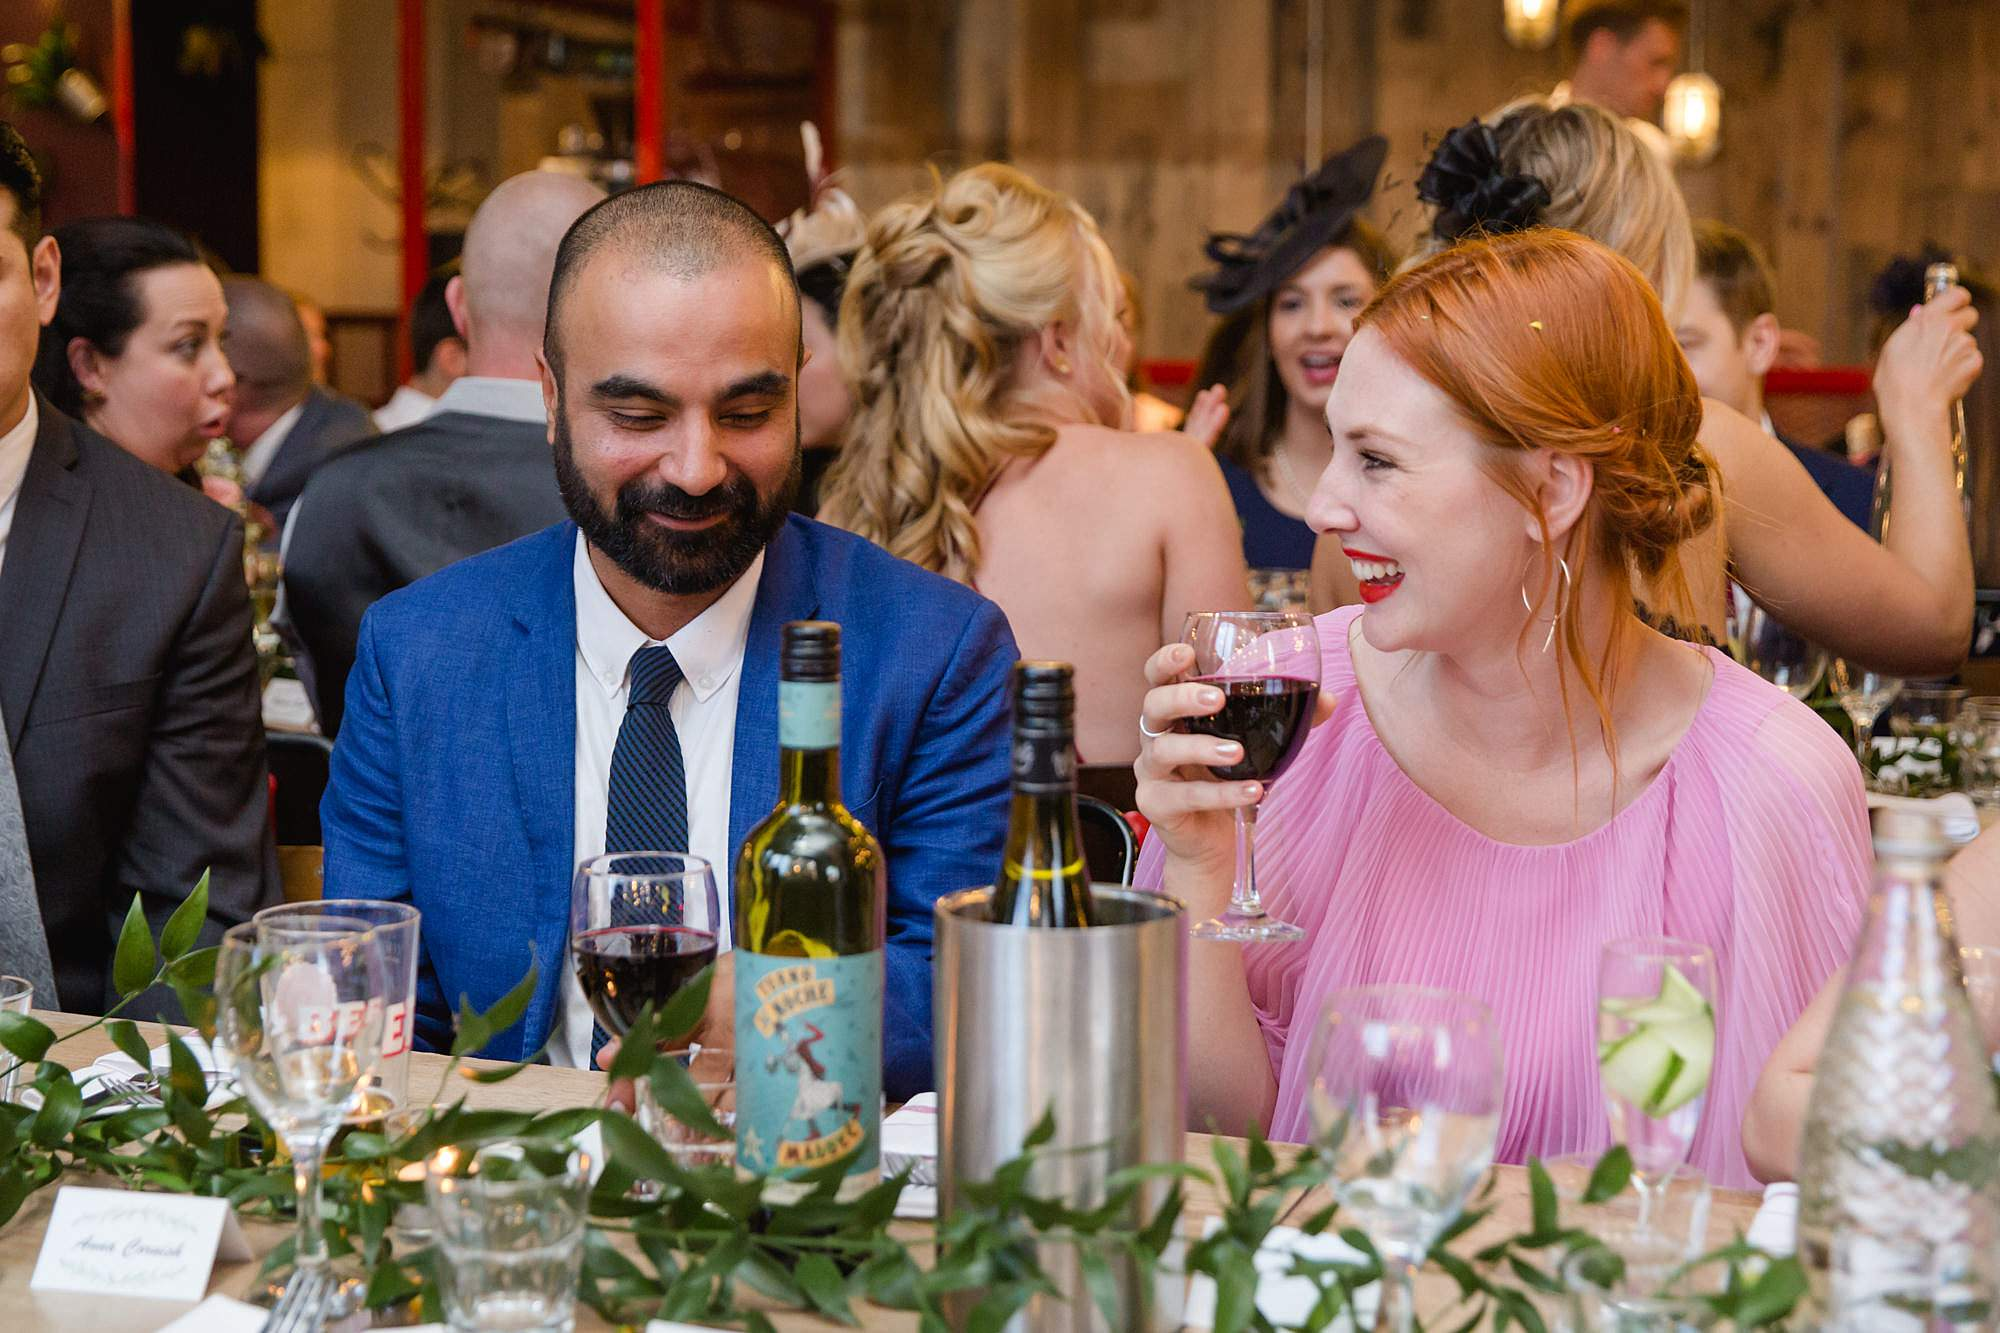 The Union Paddington wedding guests laugh together over dinner